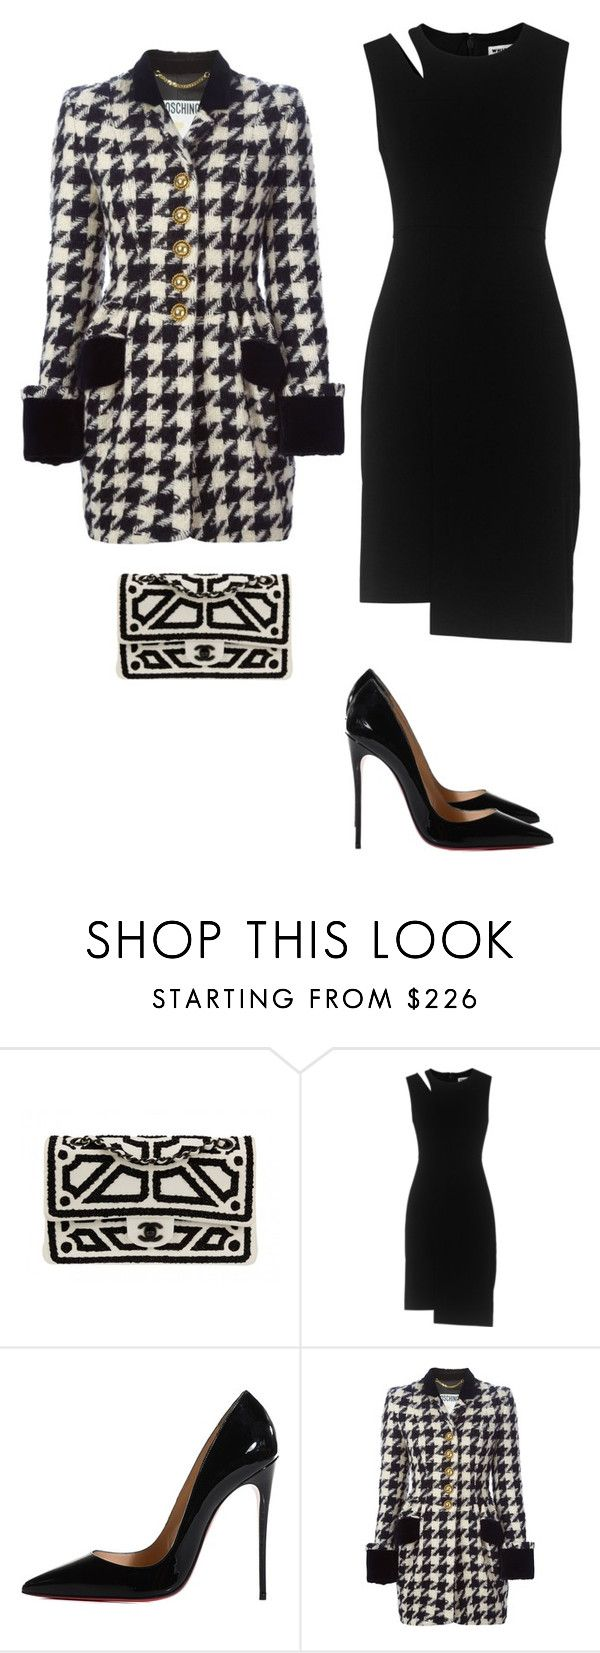 """#sintitulo50"" by sofi-crabbe on Polyvore featuring moda, Chanel, Whistles, Christian Louboutin y Moschino"